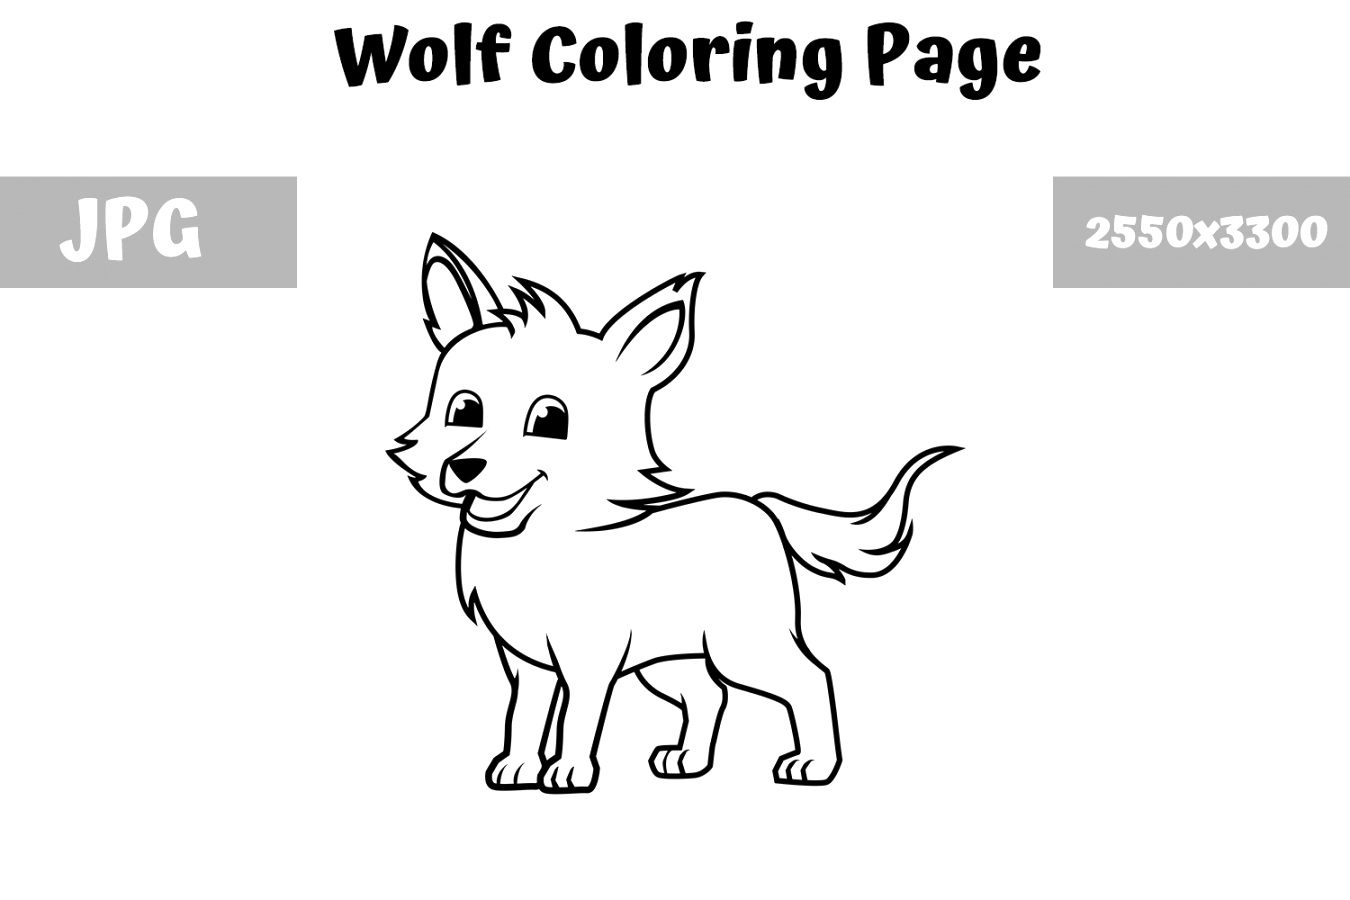 benefits of wolf coloring pages Printable Coloring Page